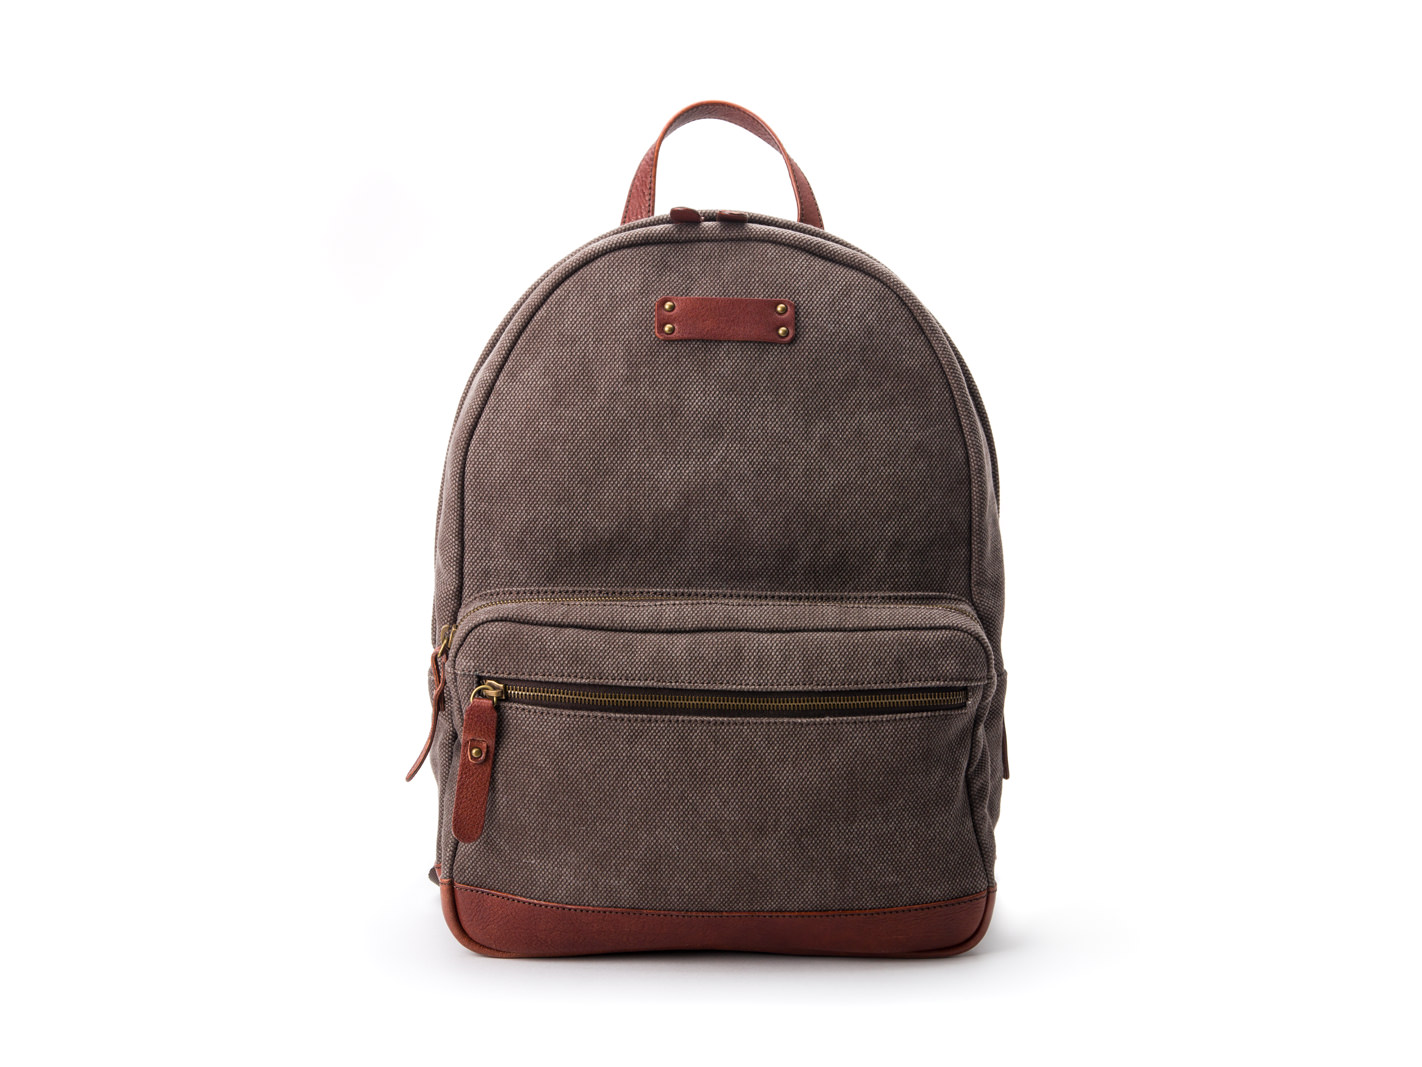 Fabric & Washed Leather Backpack-858 Gray & Brown - 309